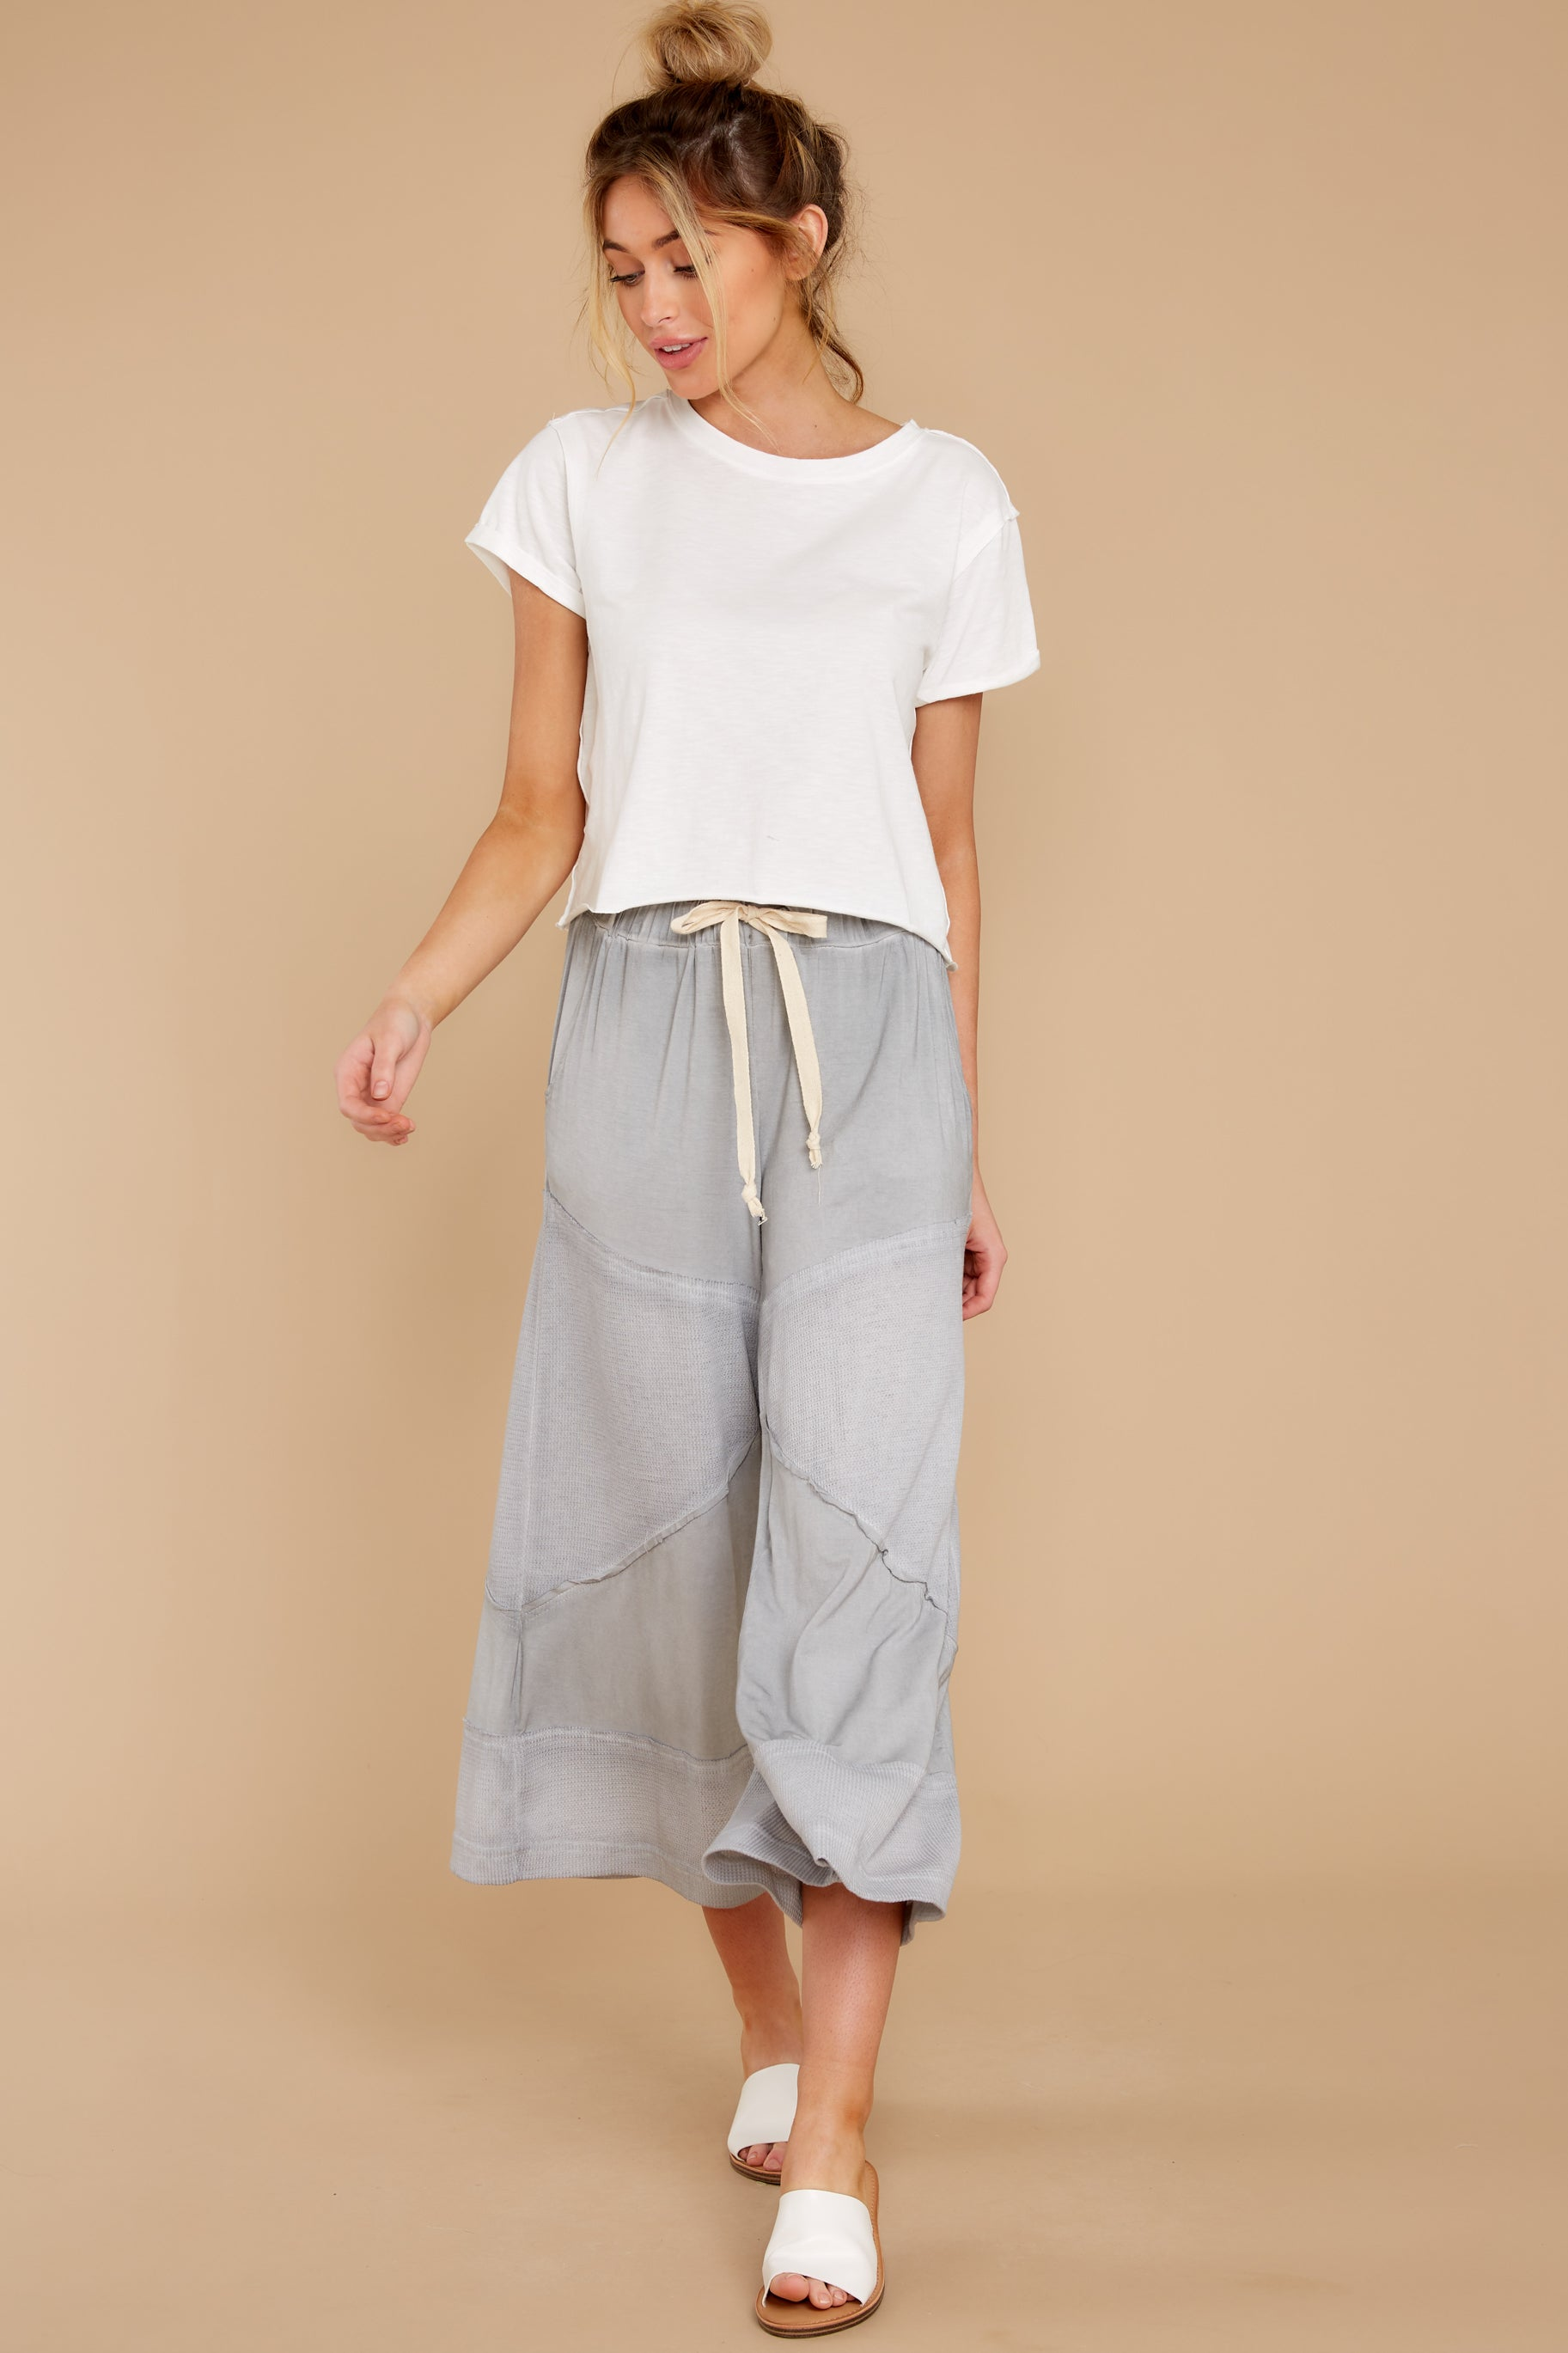 7 On The Other Side Dove Grey Pants at reddress.com